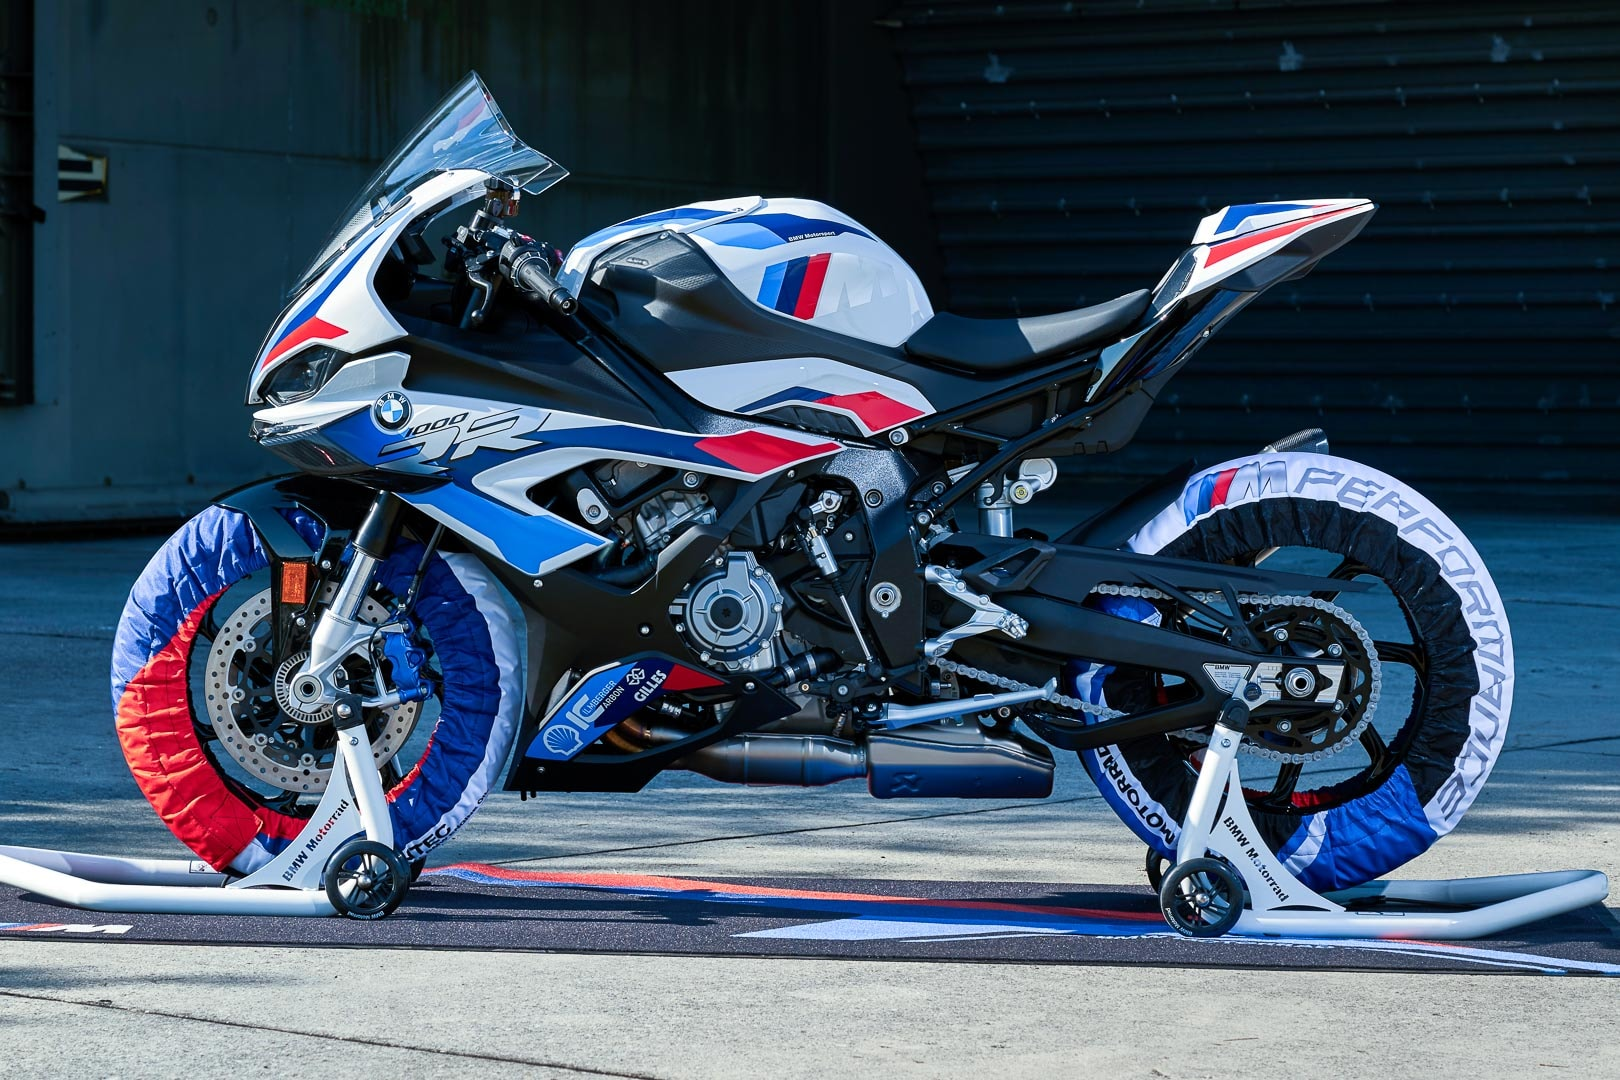 The all-new BMW M 1000 RR comes with a newly developed water/oil cooled in-line four cylinder engine. This unit is based on the powertrain from the existing S 1000 RR super sportbike.